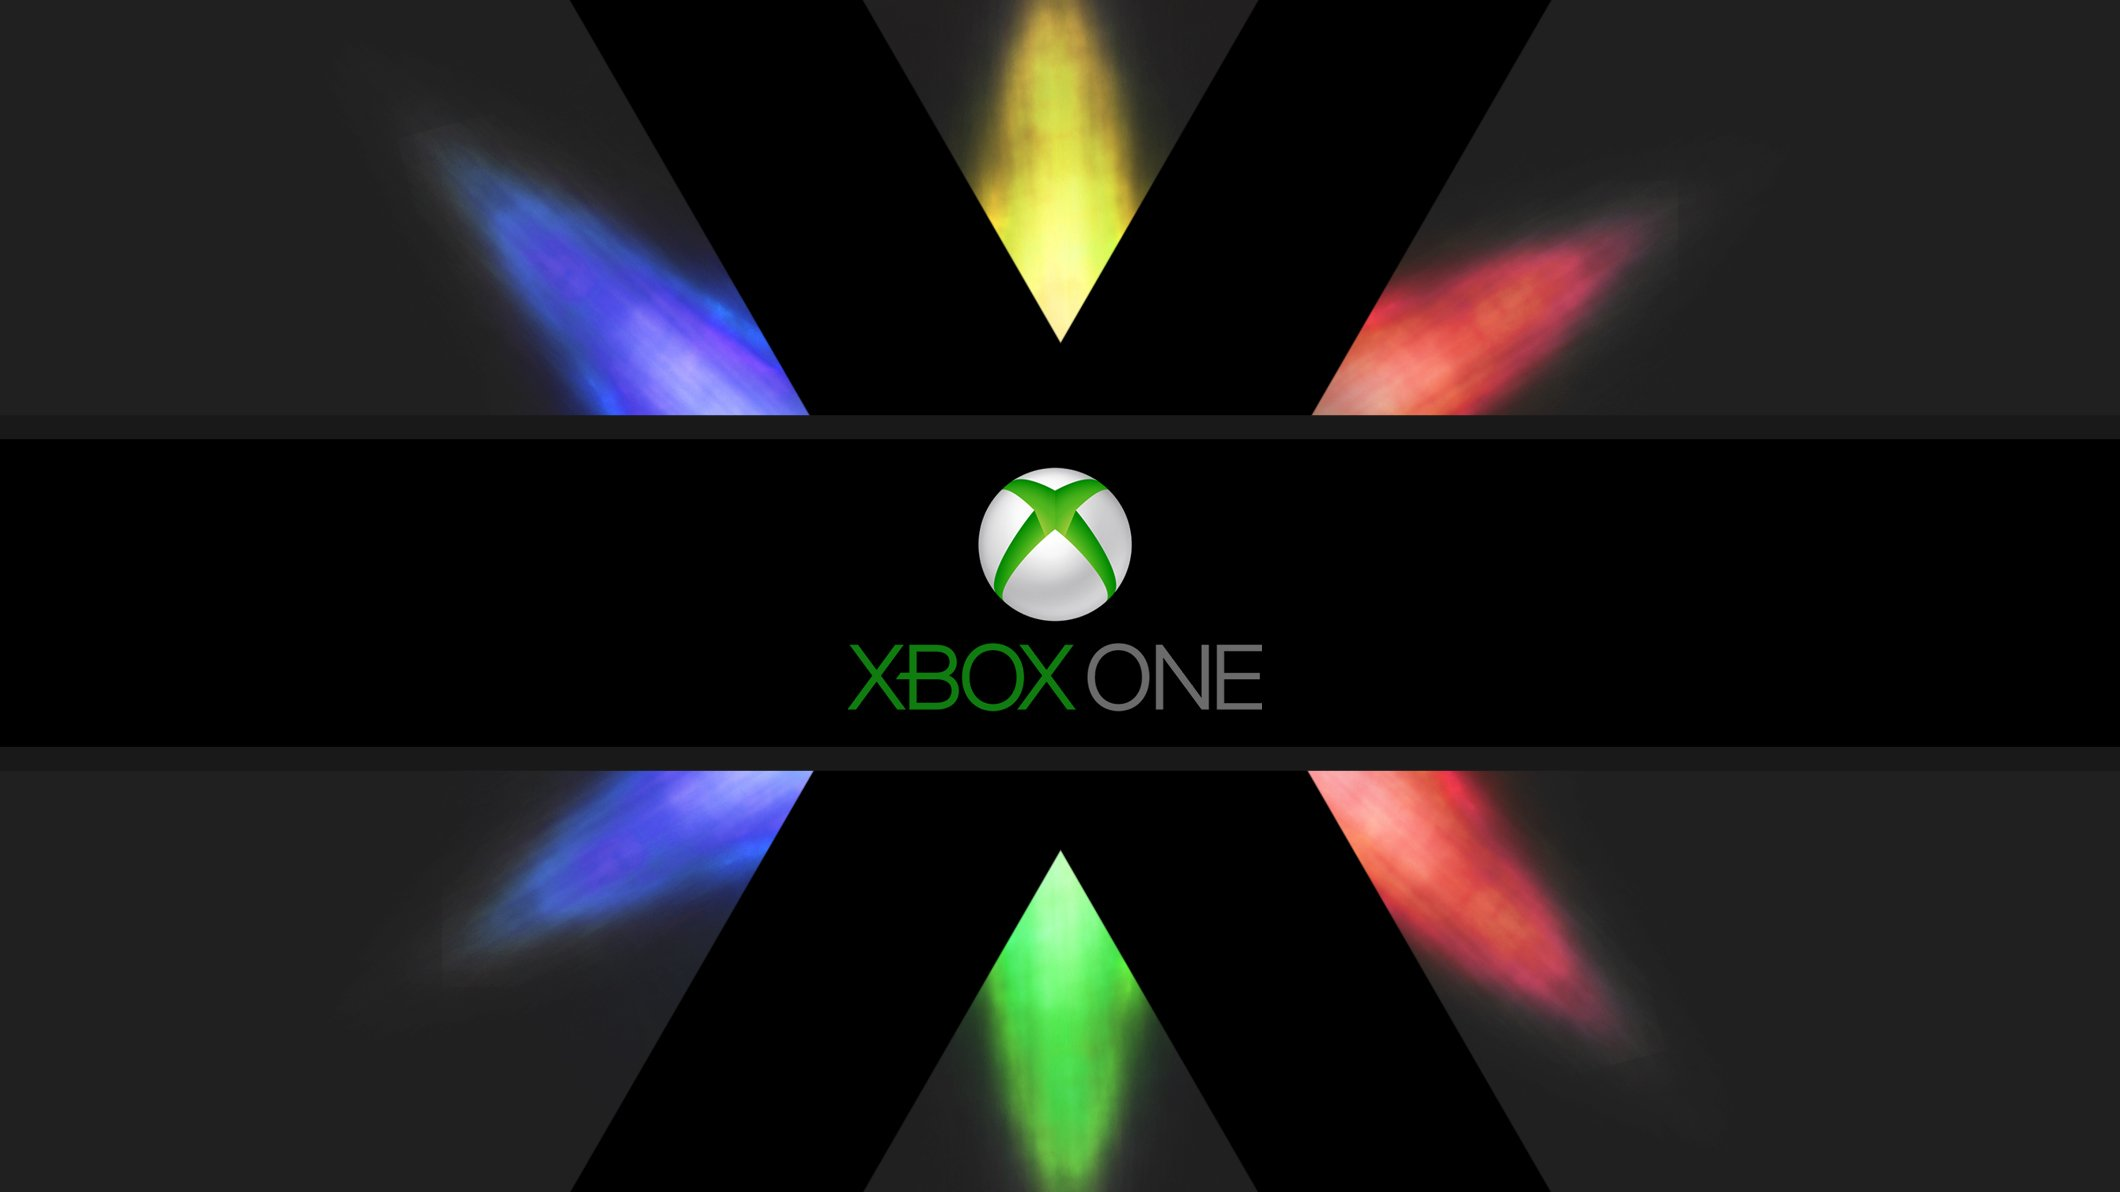 Free Download Xbox One Game Wallpaper Xbox One Video Game System 2120x1192 For Your Desktop Mobile Tablet Explore 48 Xbox One Wallpapers For Console Download Wallpaper For Xbox One